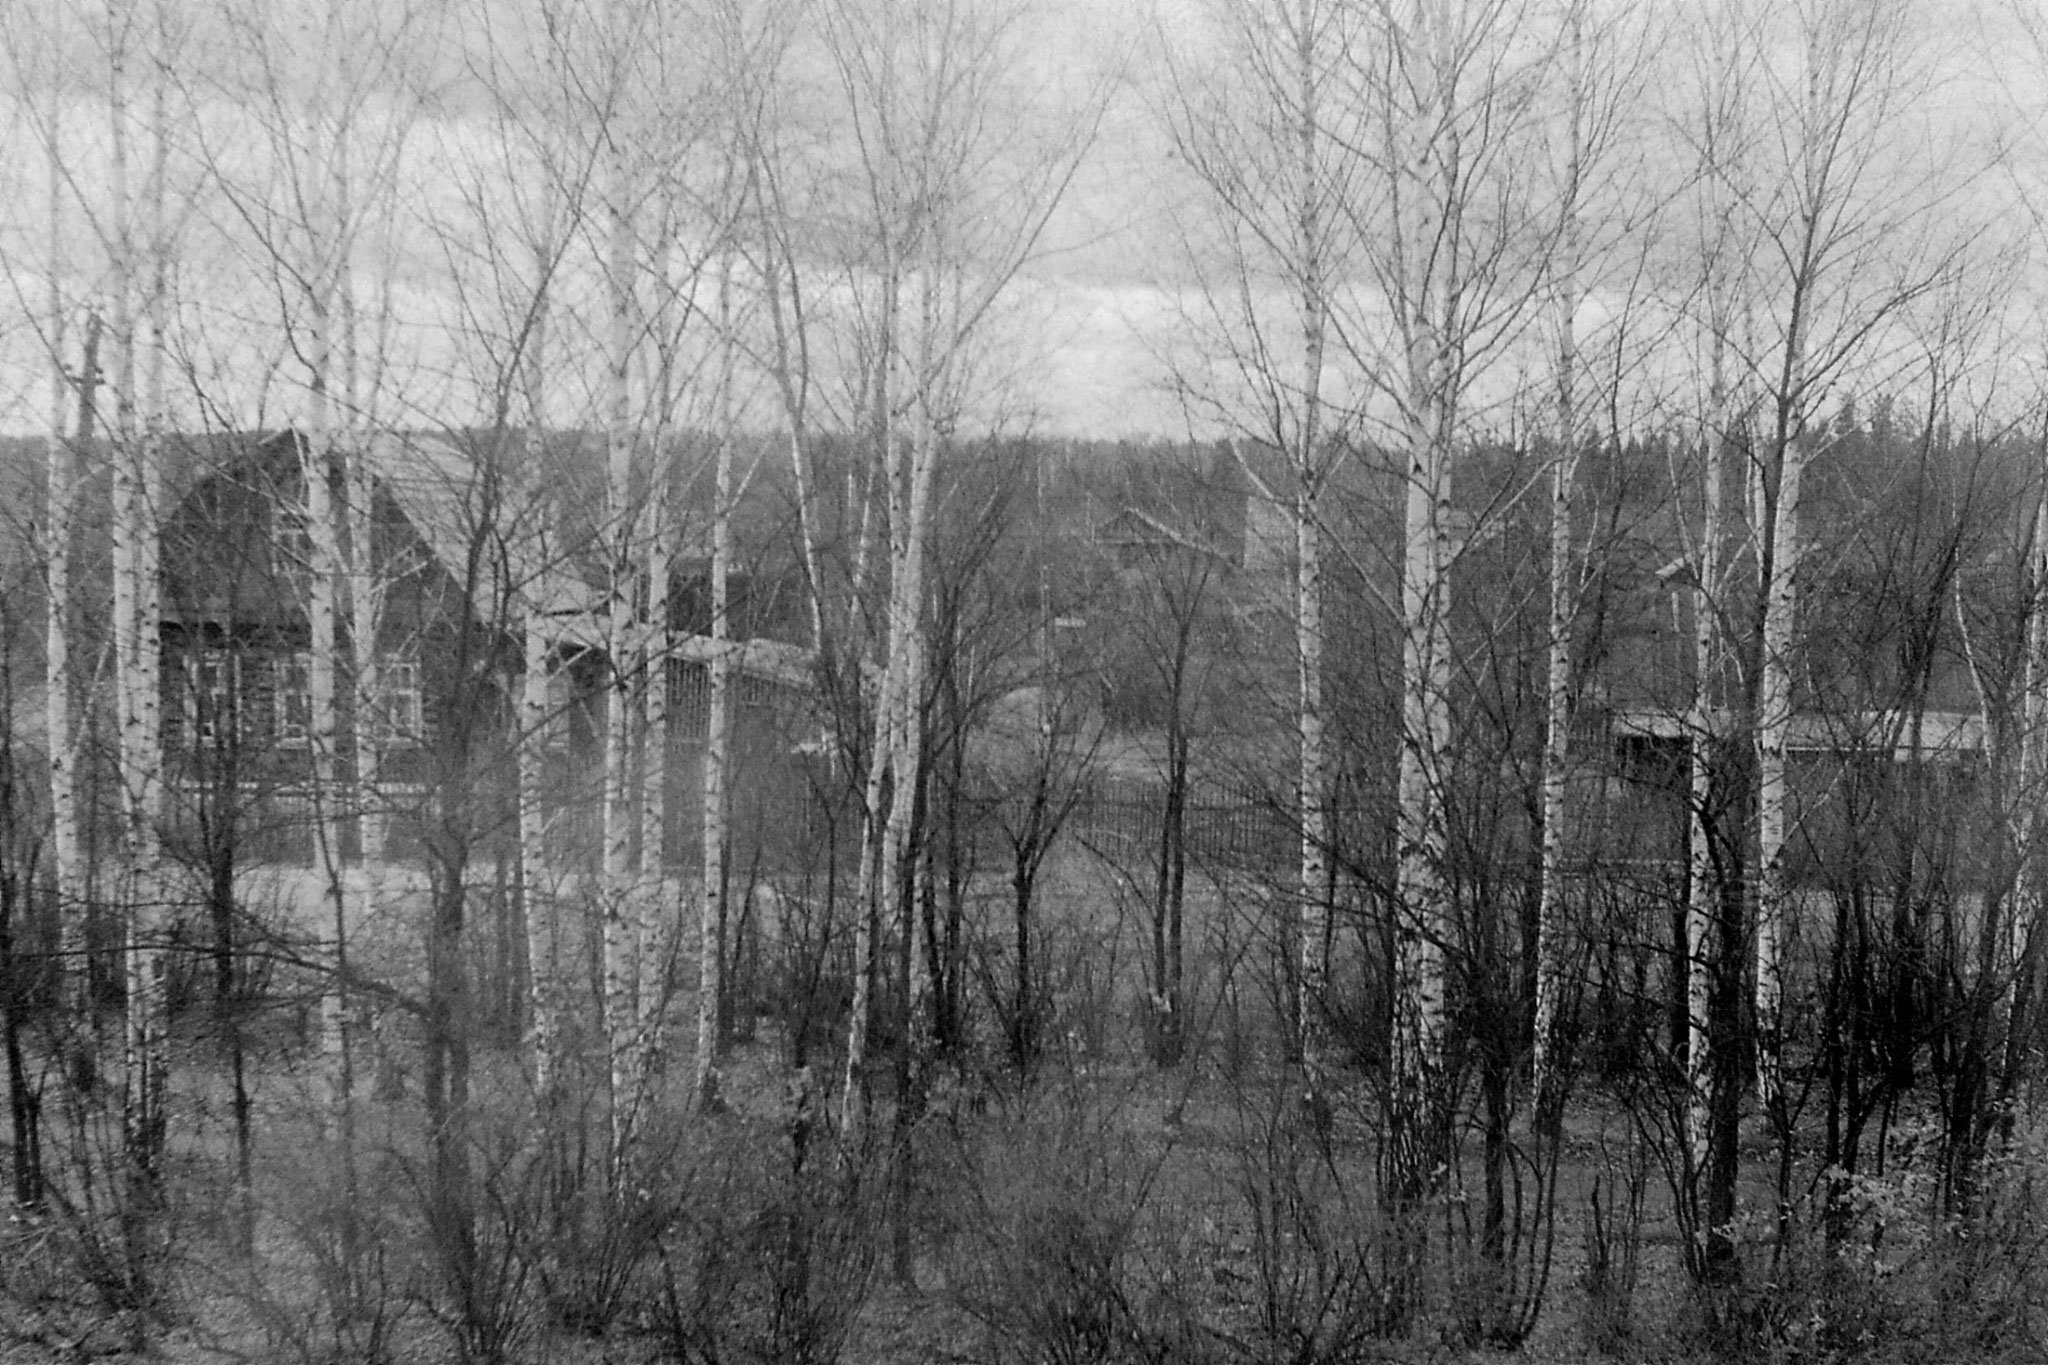 19/10/1988: 28: from Siberian Express between Balezino and Perm